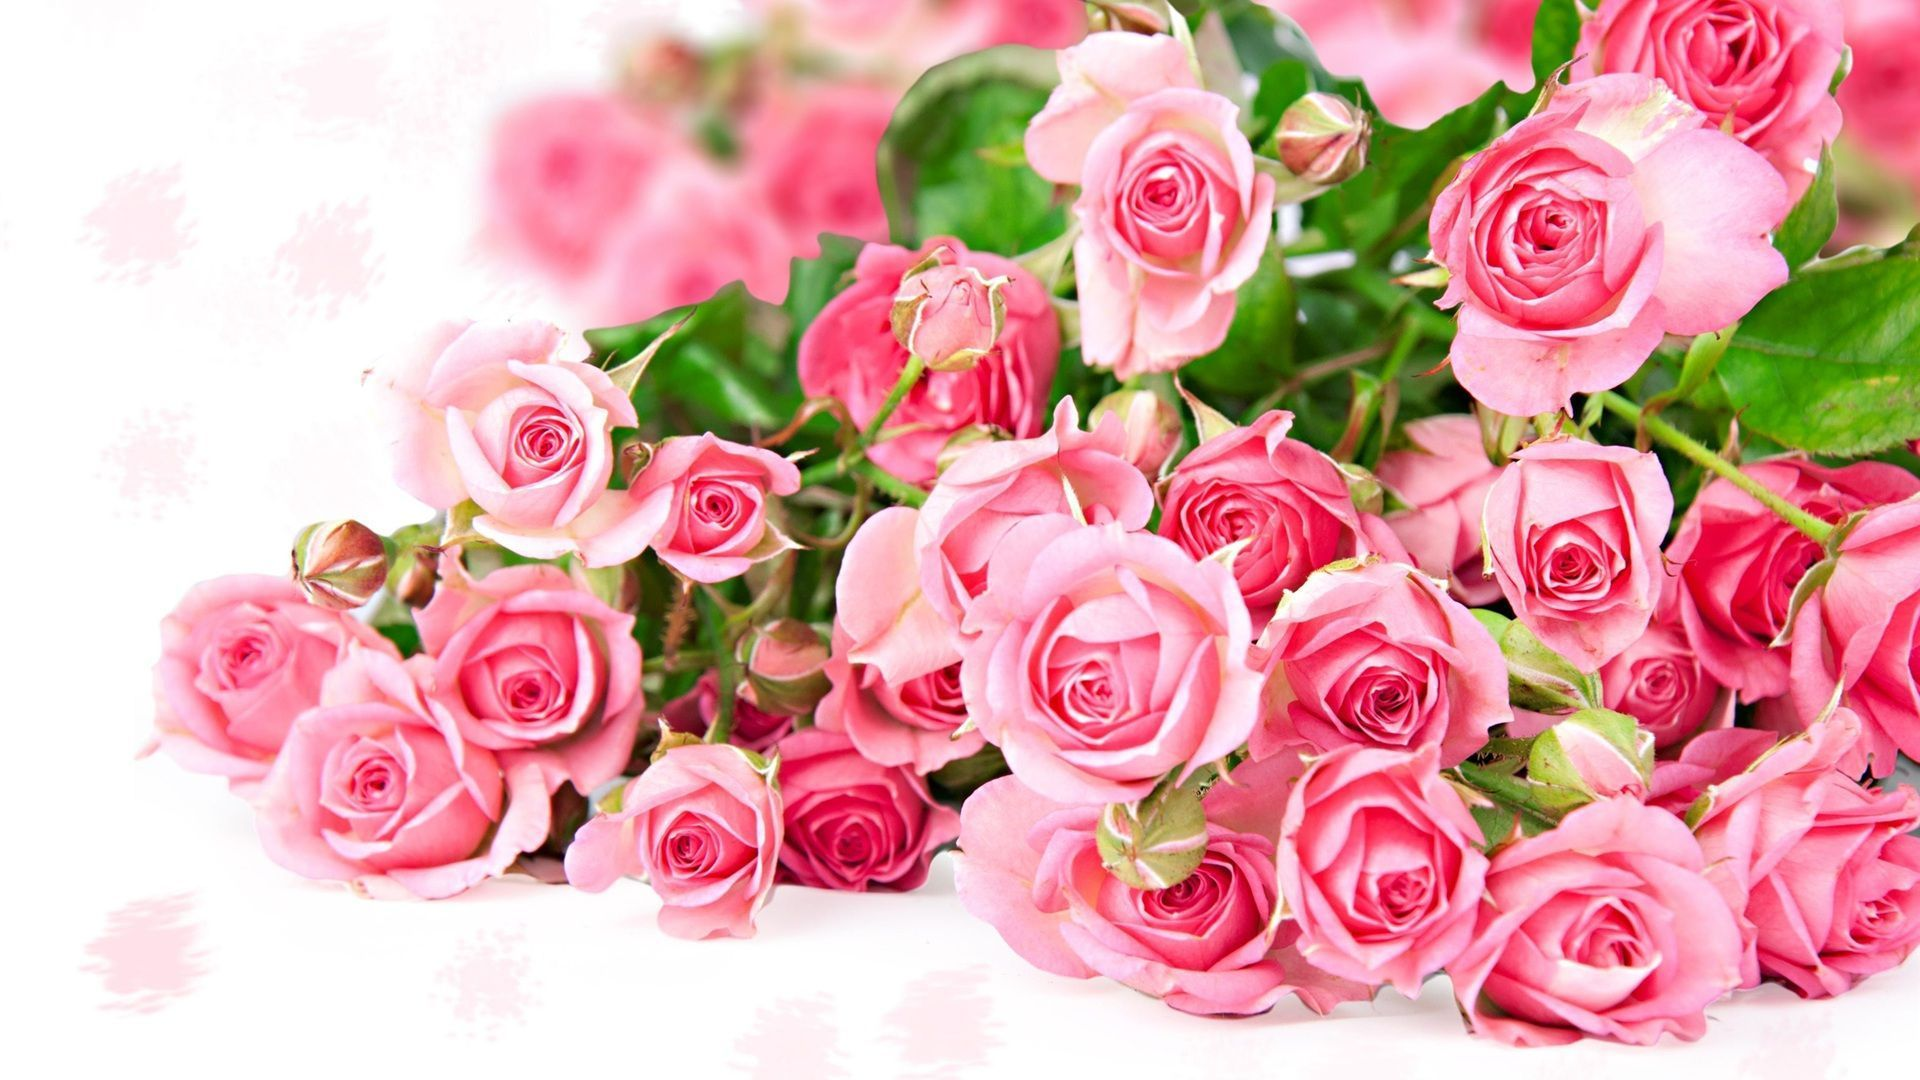 Top 10 beautiful rose flowers picture beautiful rose flower photos beautiful rose flowers background izmirmasajfo Image collections